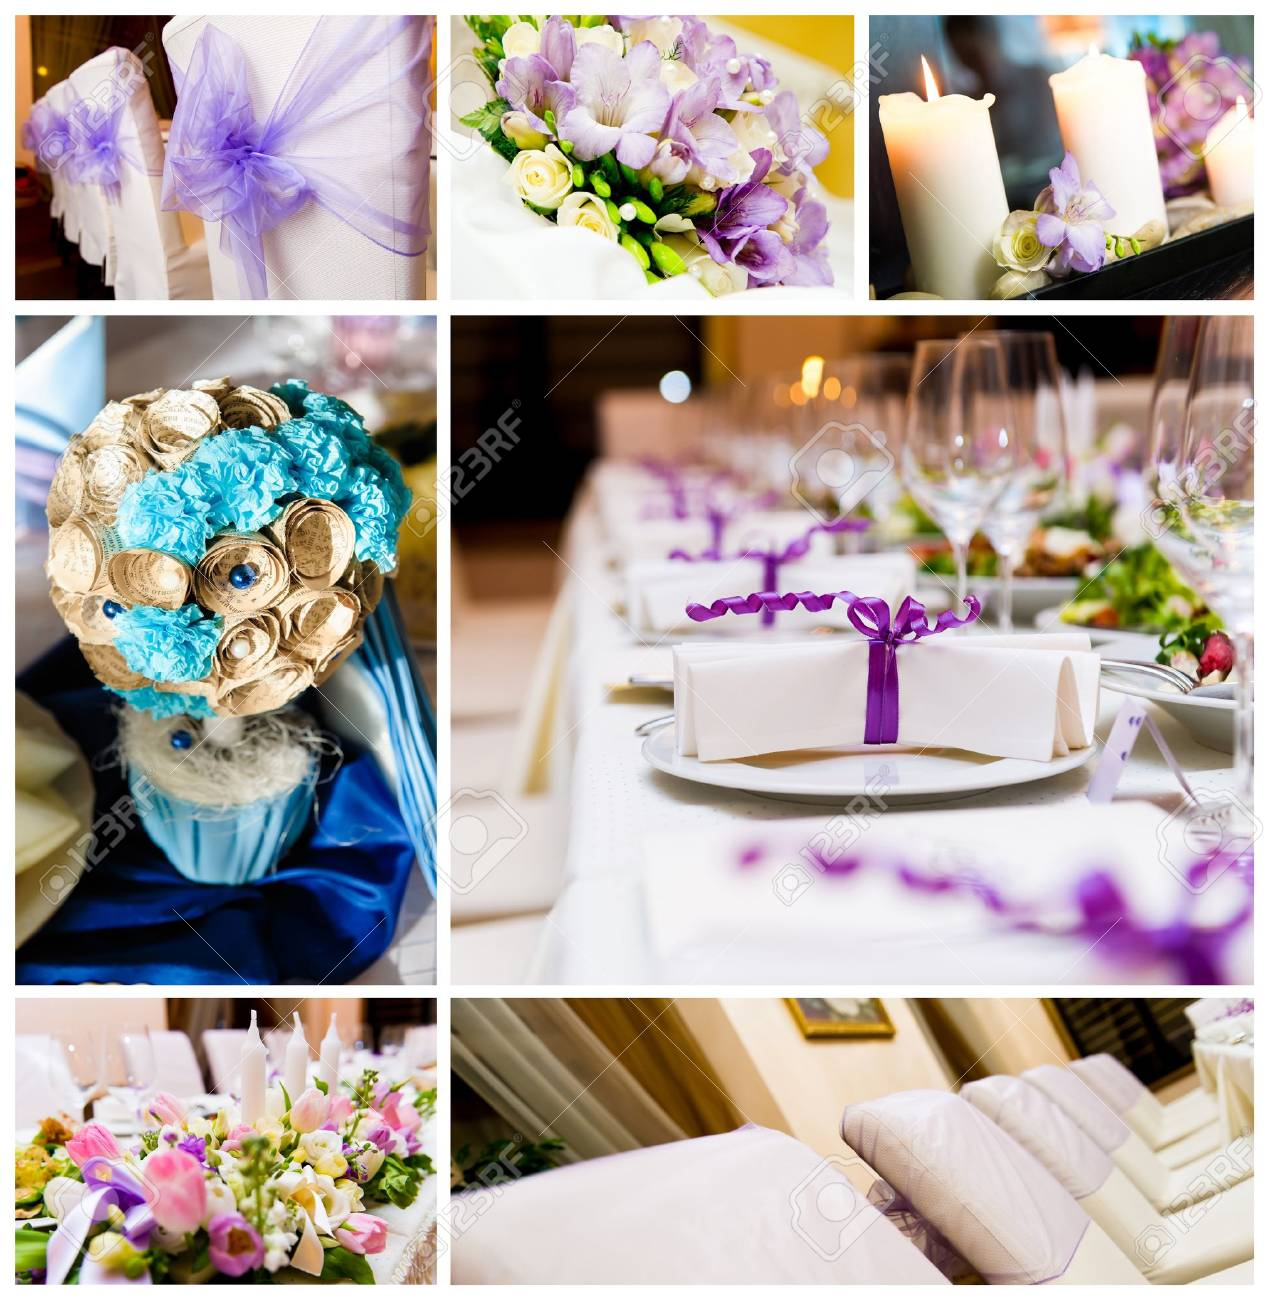 Wedding Decorations Collage Stock Photo Picture And Royalty Free